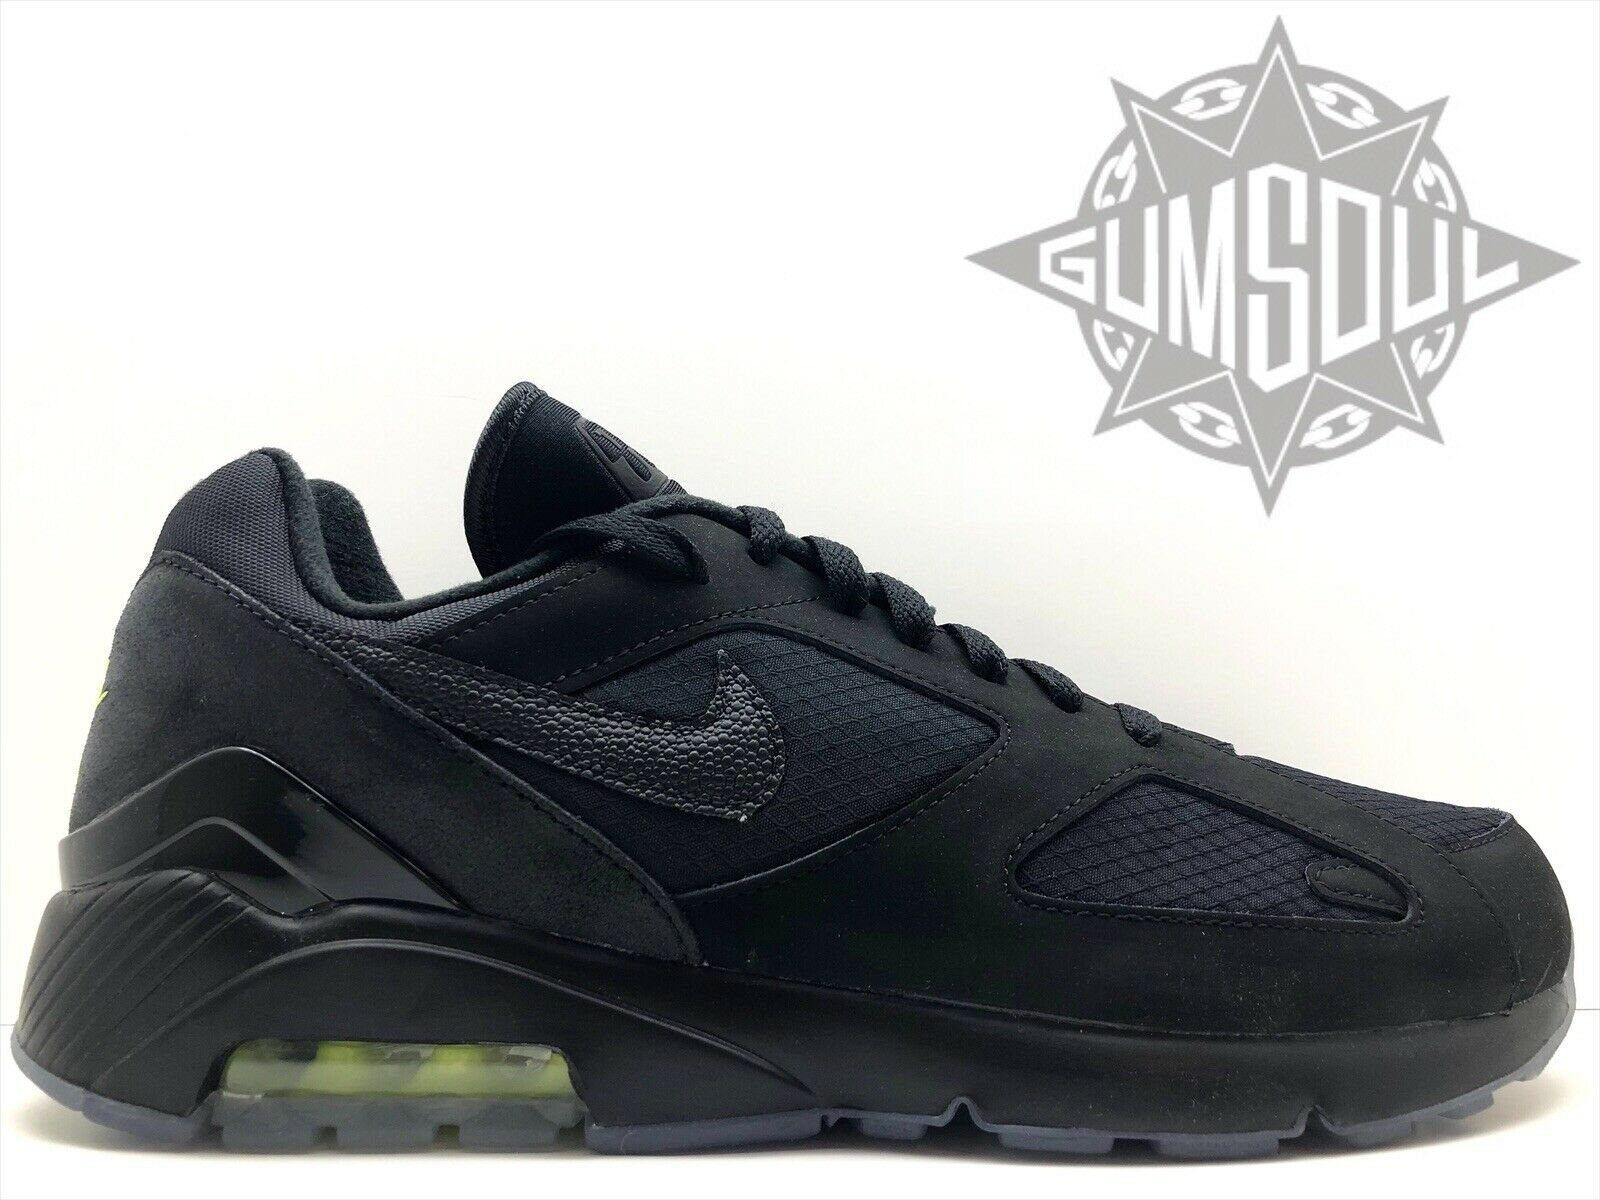 NIKE AIR MAX 180 NIGHT OPS nero nero nero VOLT GLOW IN THE DARK SOLE AQ6104 001 sz 8.5 bcb5b2